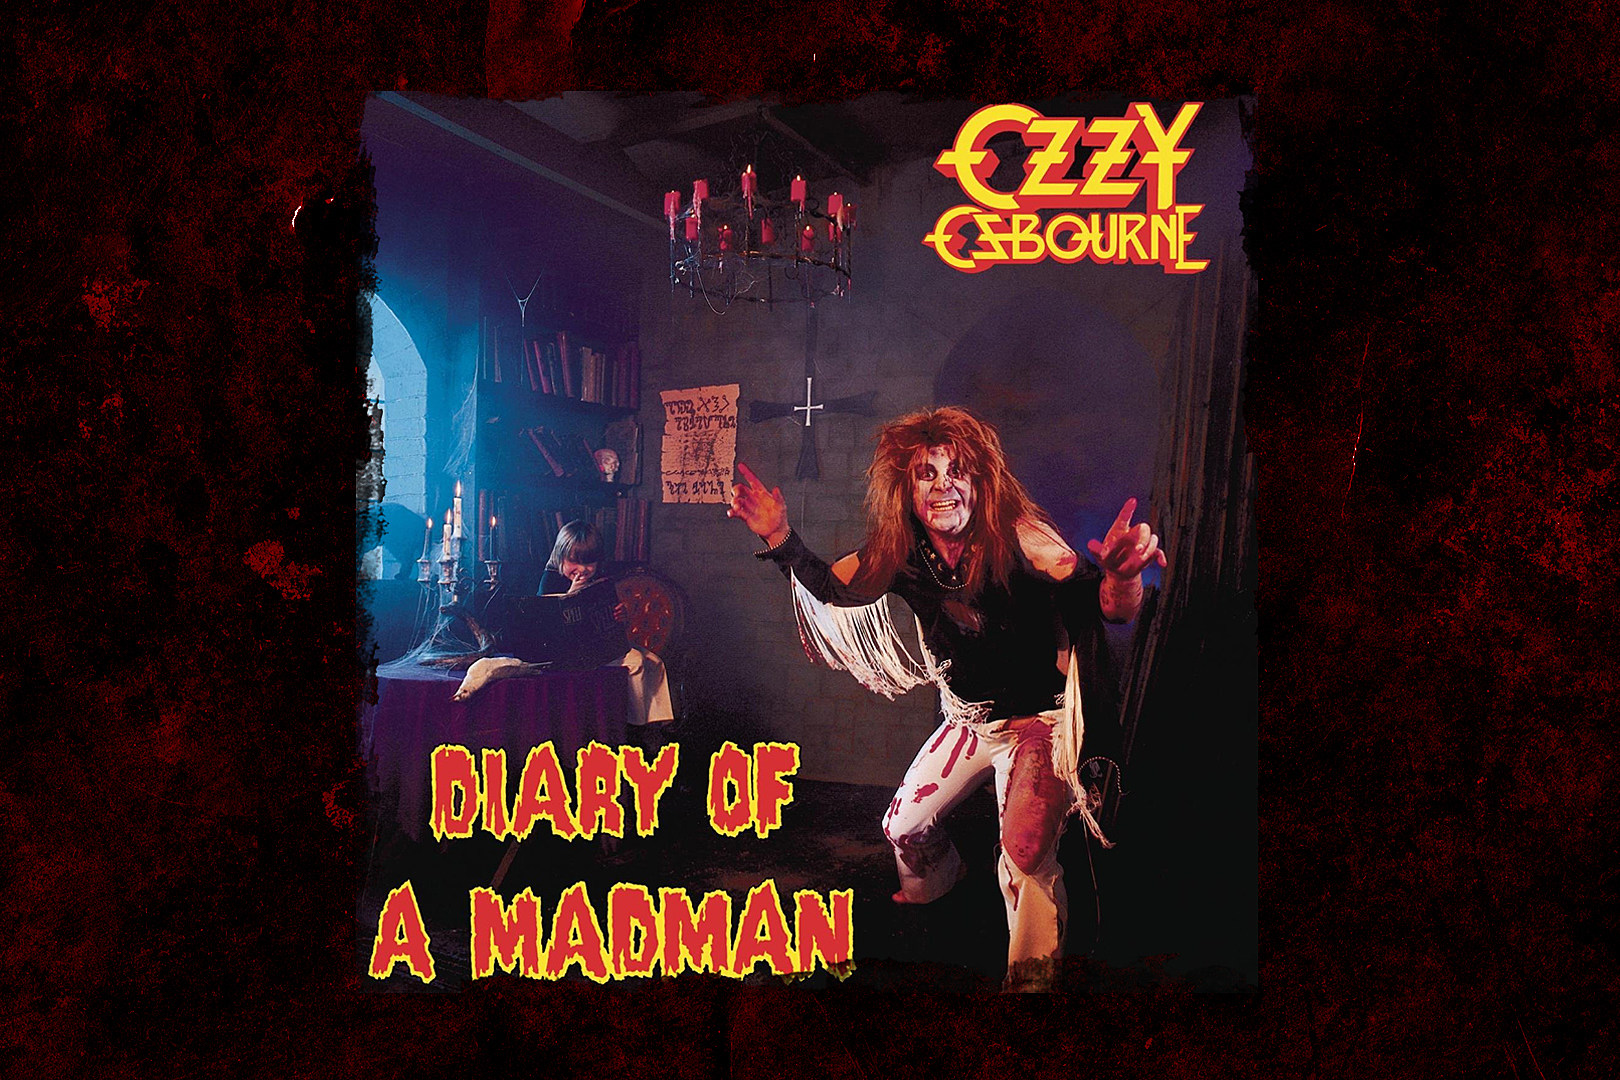 diary of a madman Watch diary of a madman movie trailer and get the latest cast info, photos, movie review and more on tvguidecom.